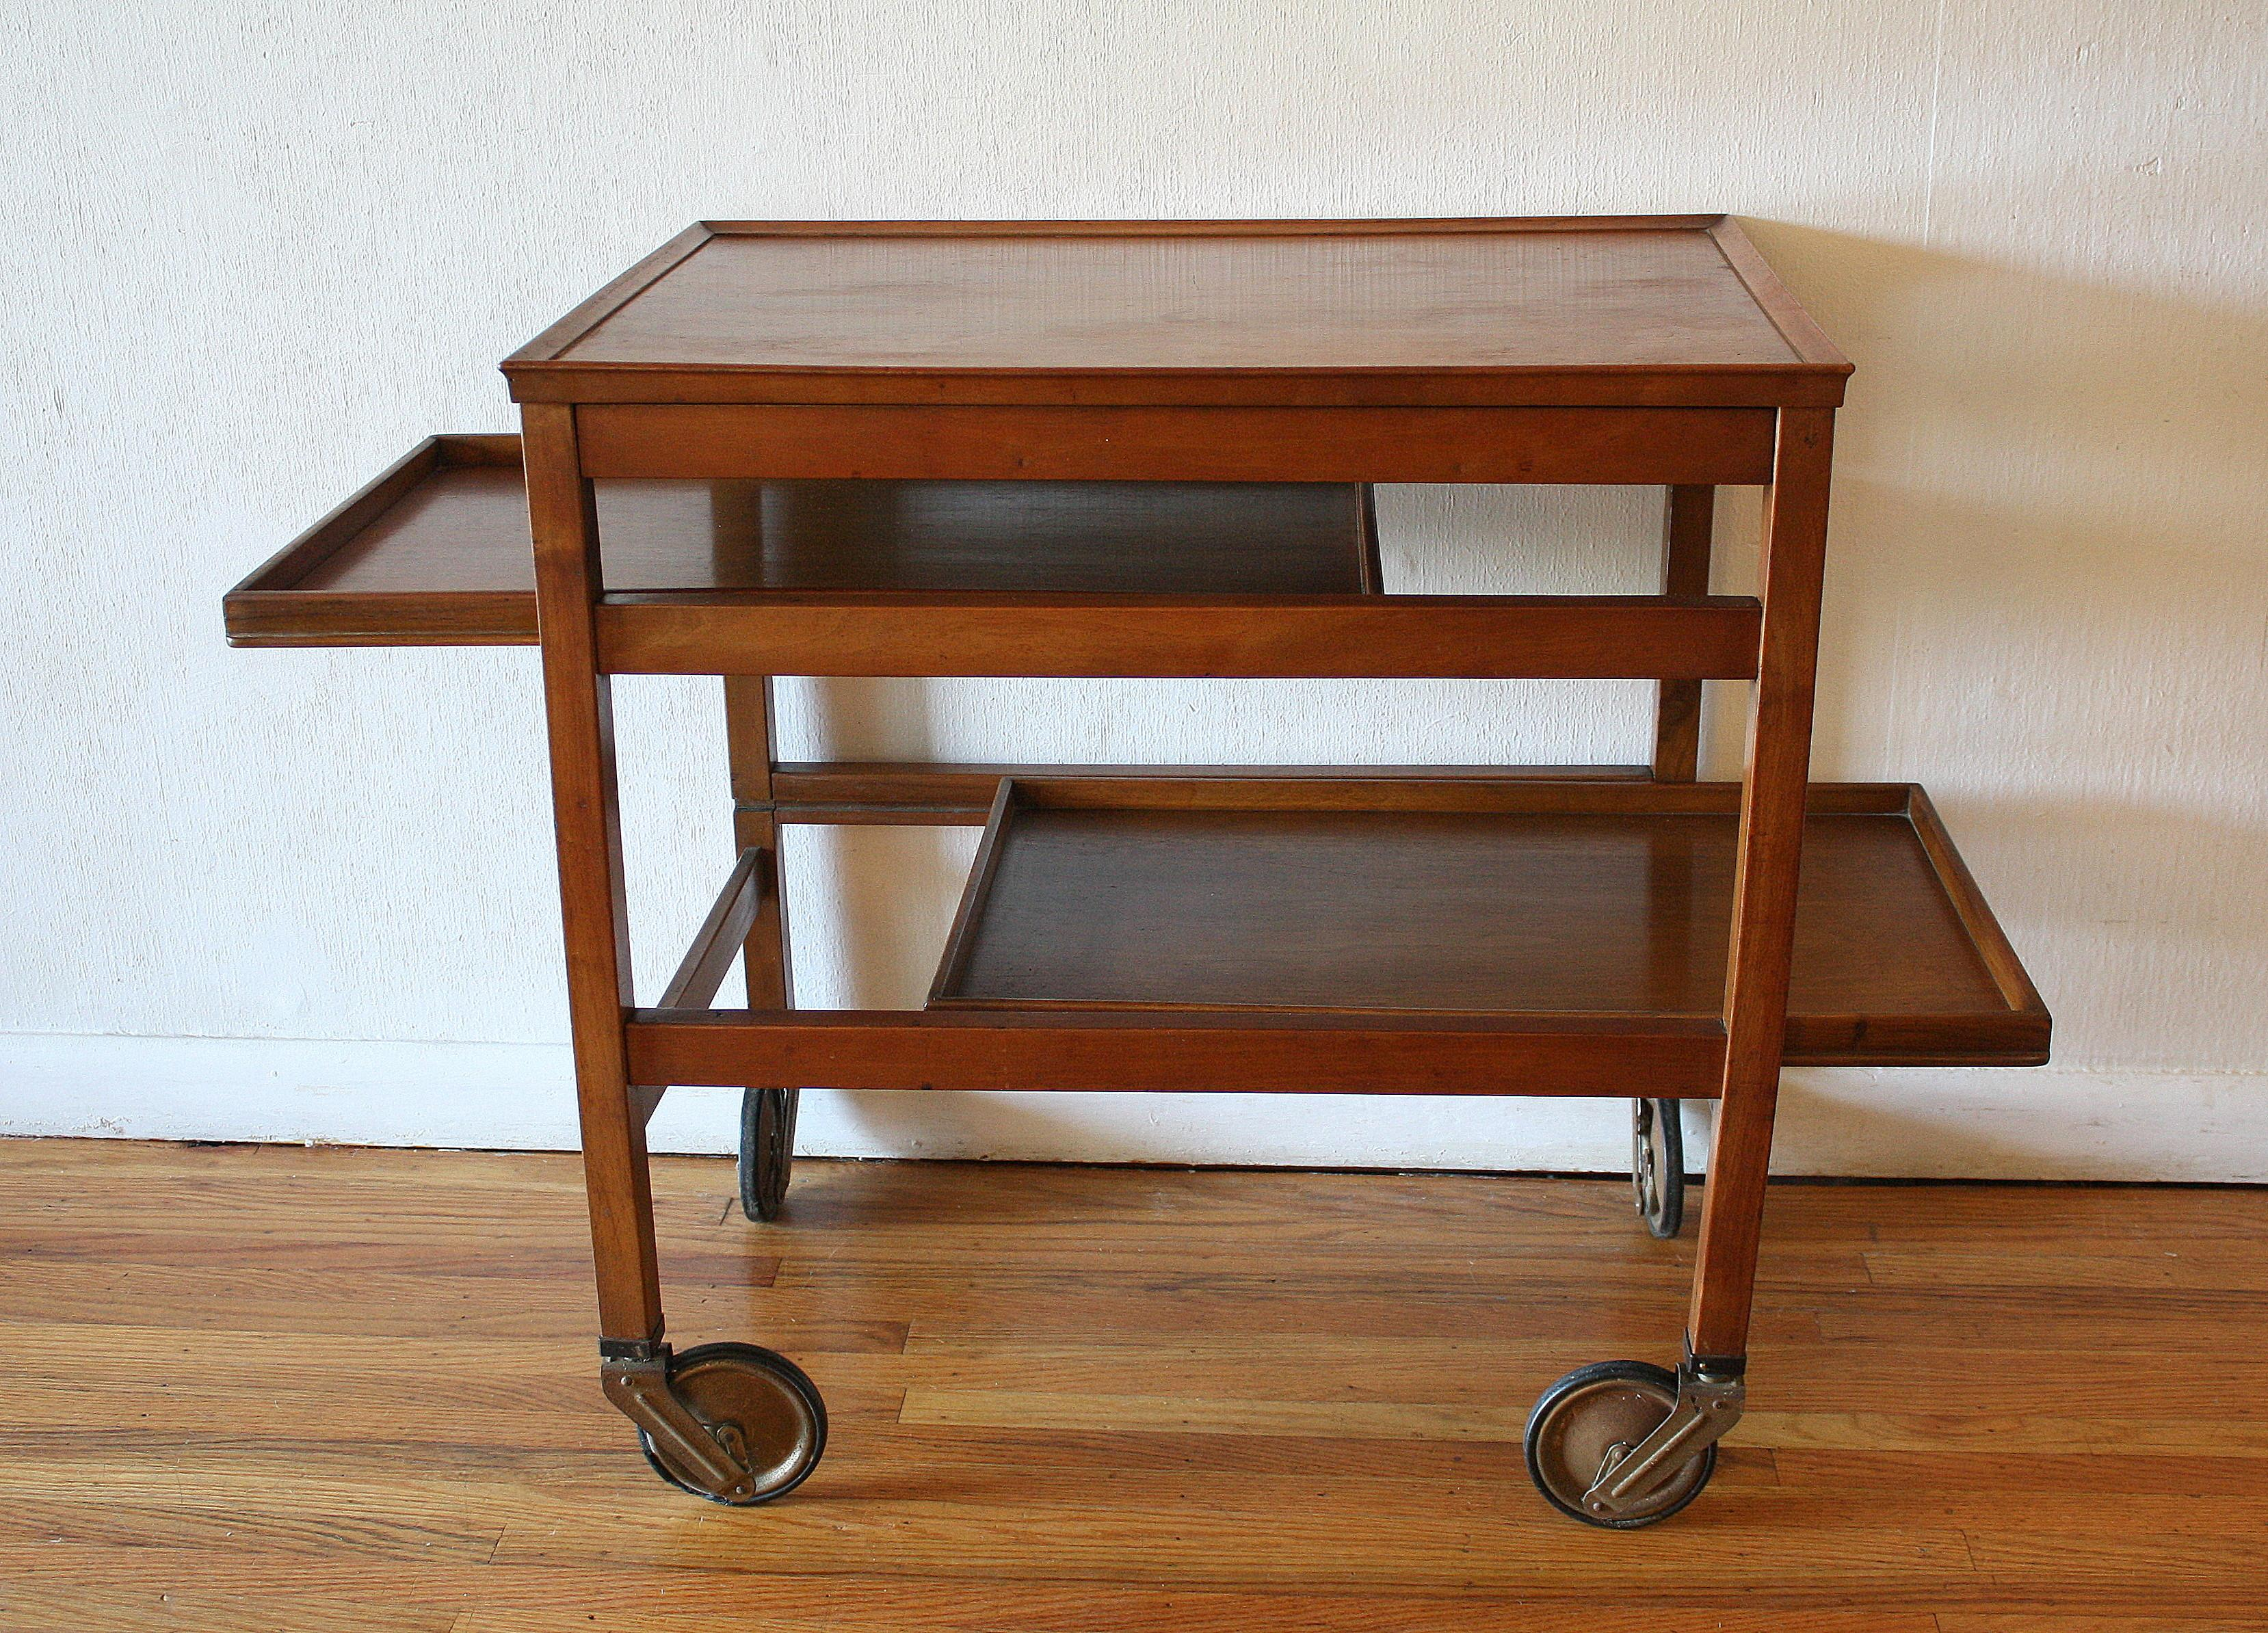 37 Comfy Stylish Bar Carts That You Ll Want To Live In Trends In 2021 Photographs Decoratorist